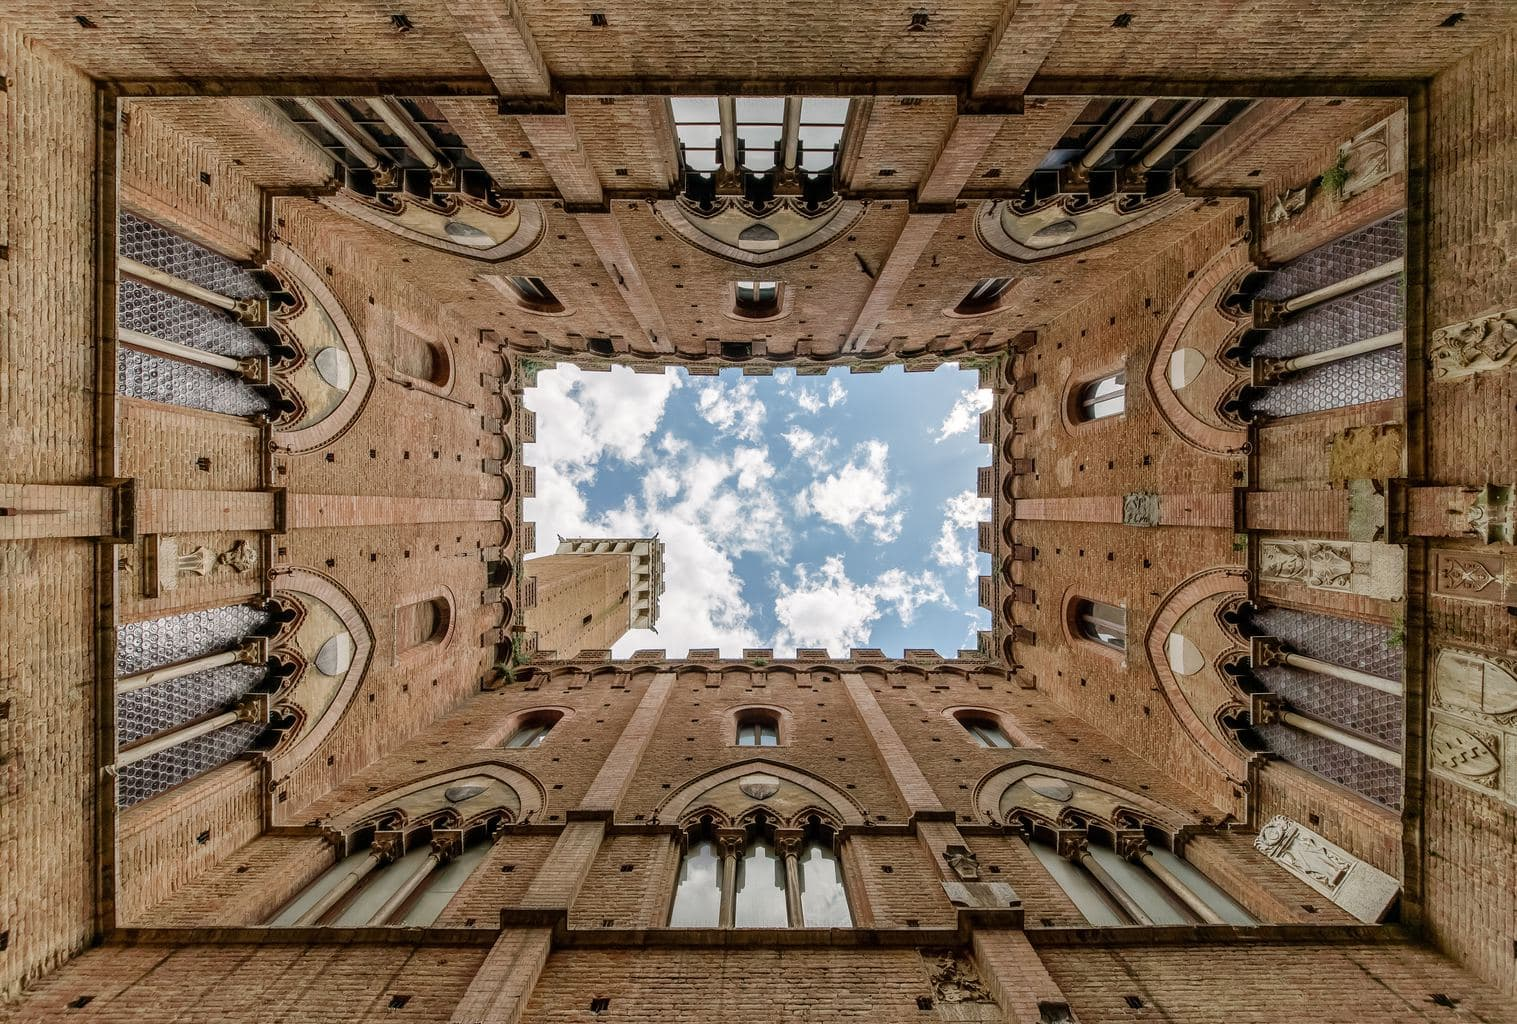 """Siena Photo by Matteo Kutufa on Unsplash"""